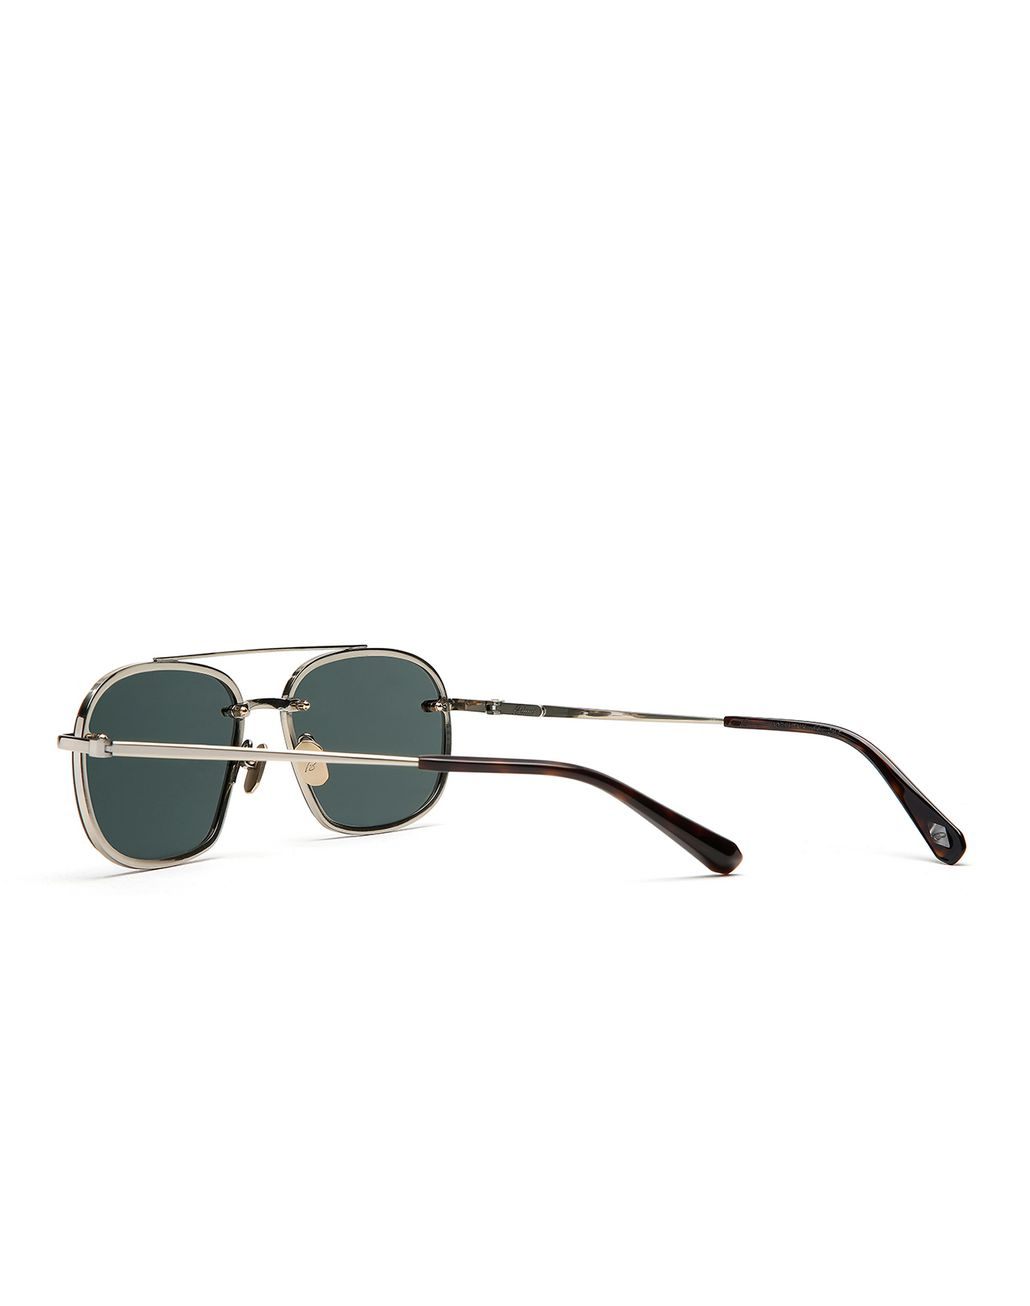 BRIONI Havana Geometric Shape Sunglasses with Grey Lenses   Sunglasses Man d